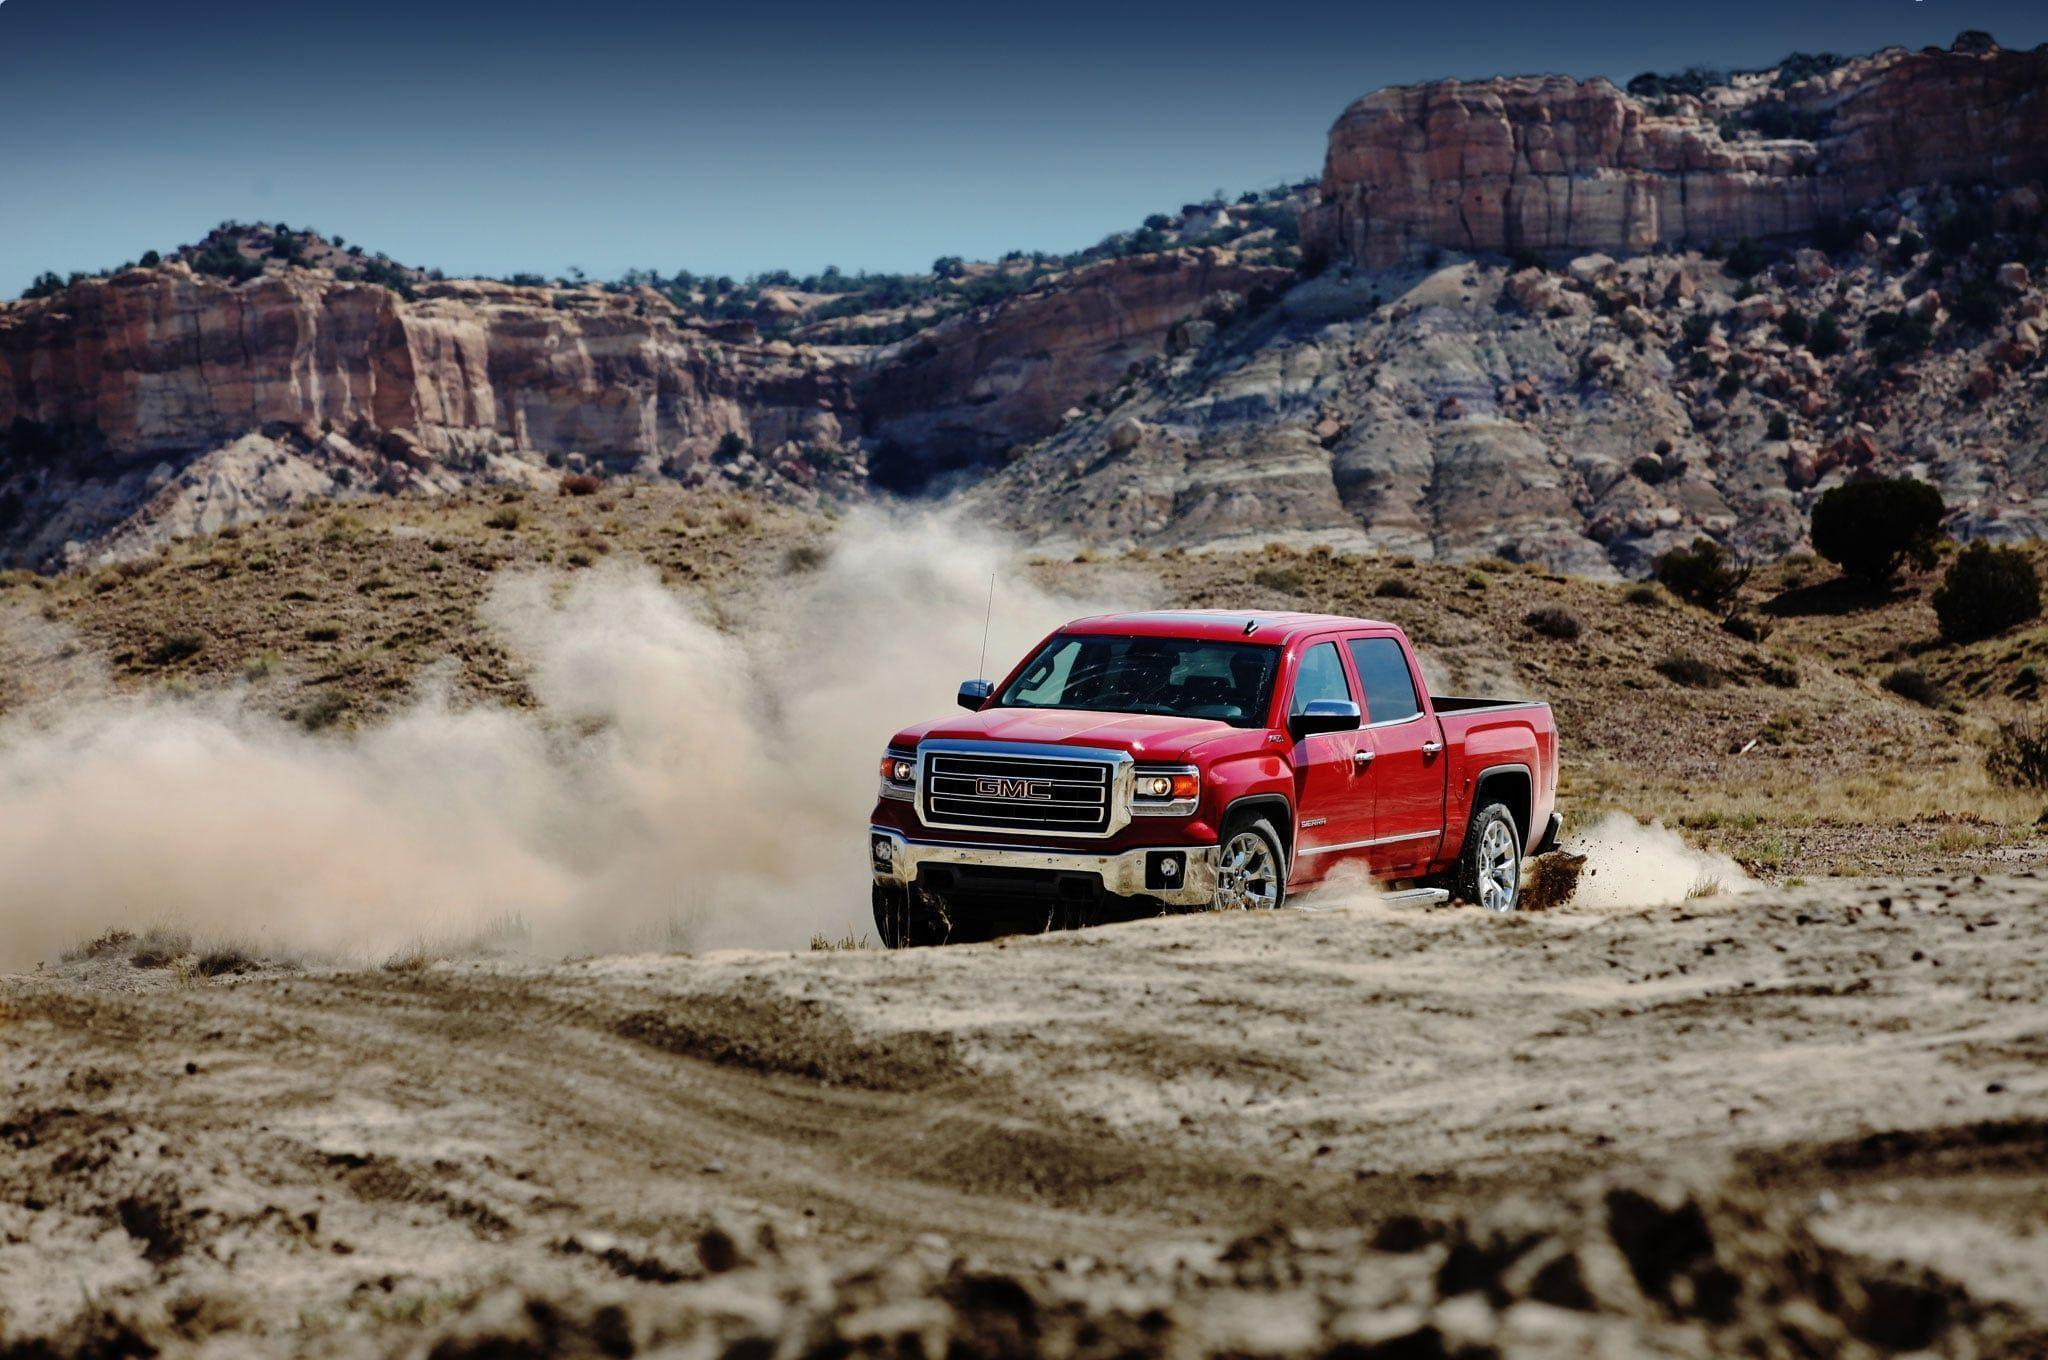 22+ GMC Sierra wallpapers HD High Quality